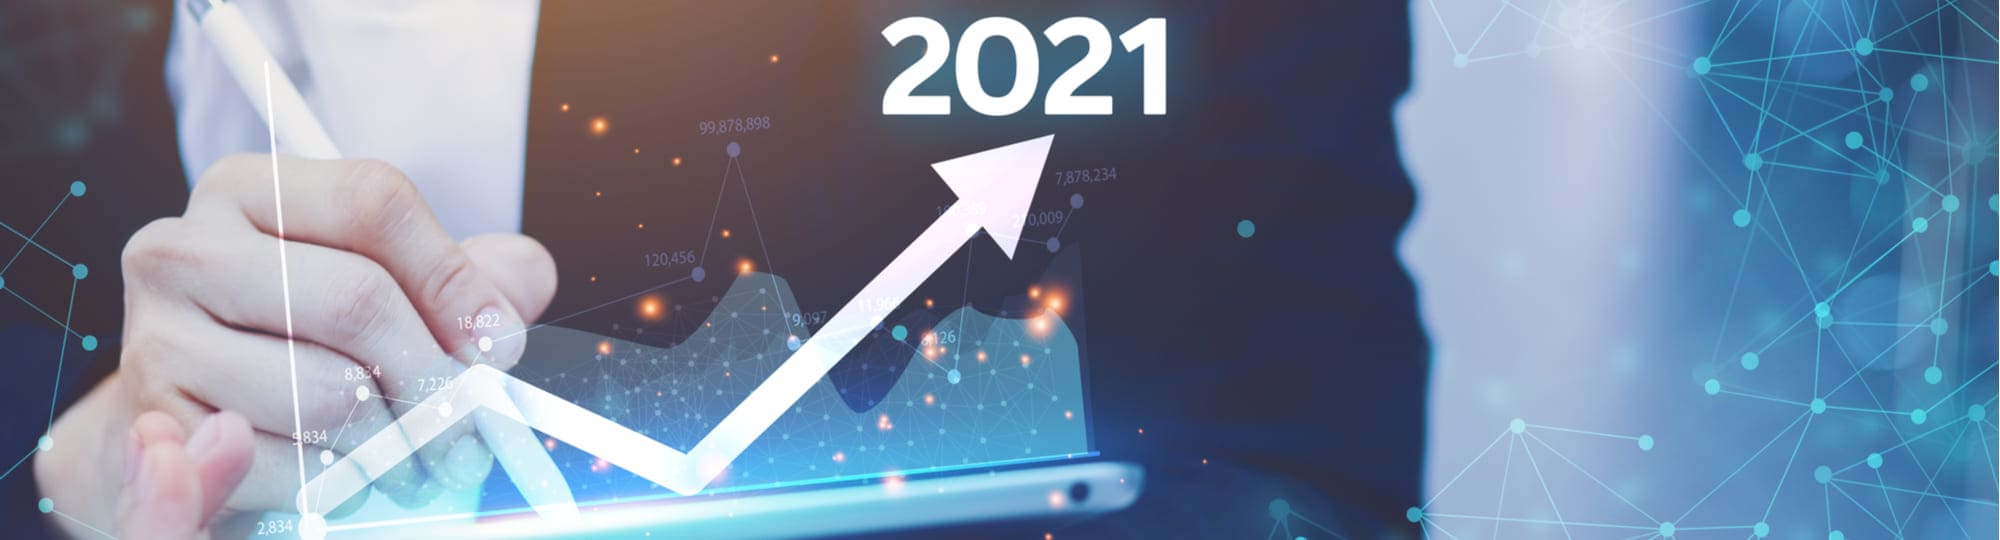 Latest technology trends 2021